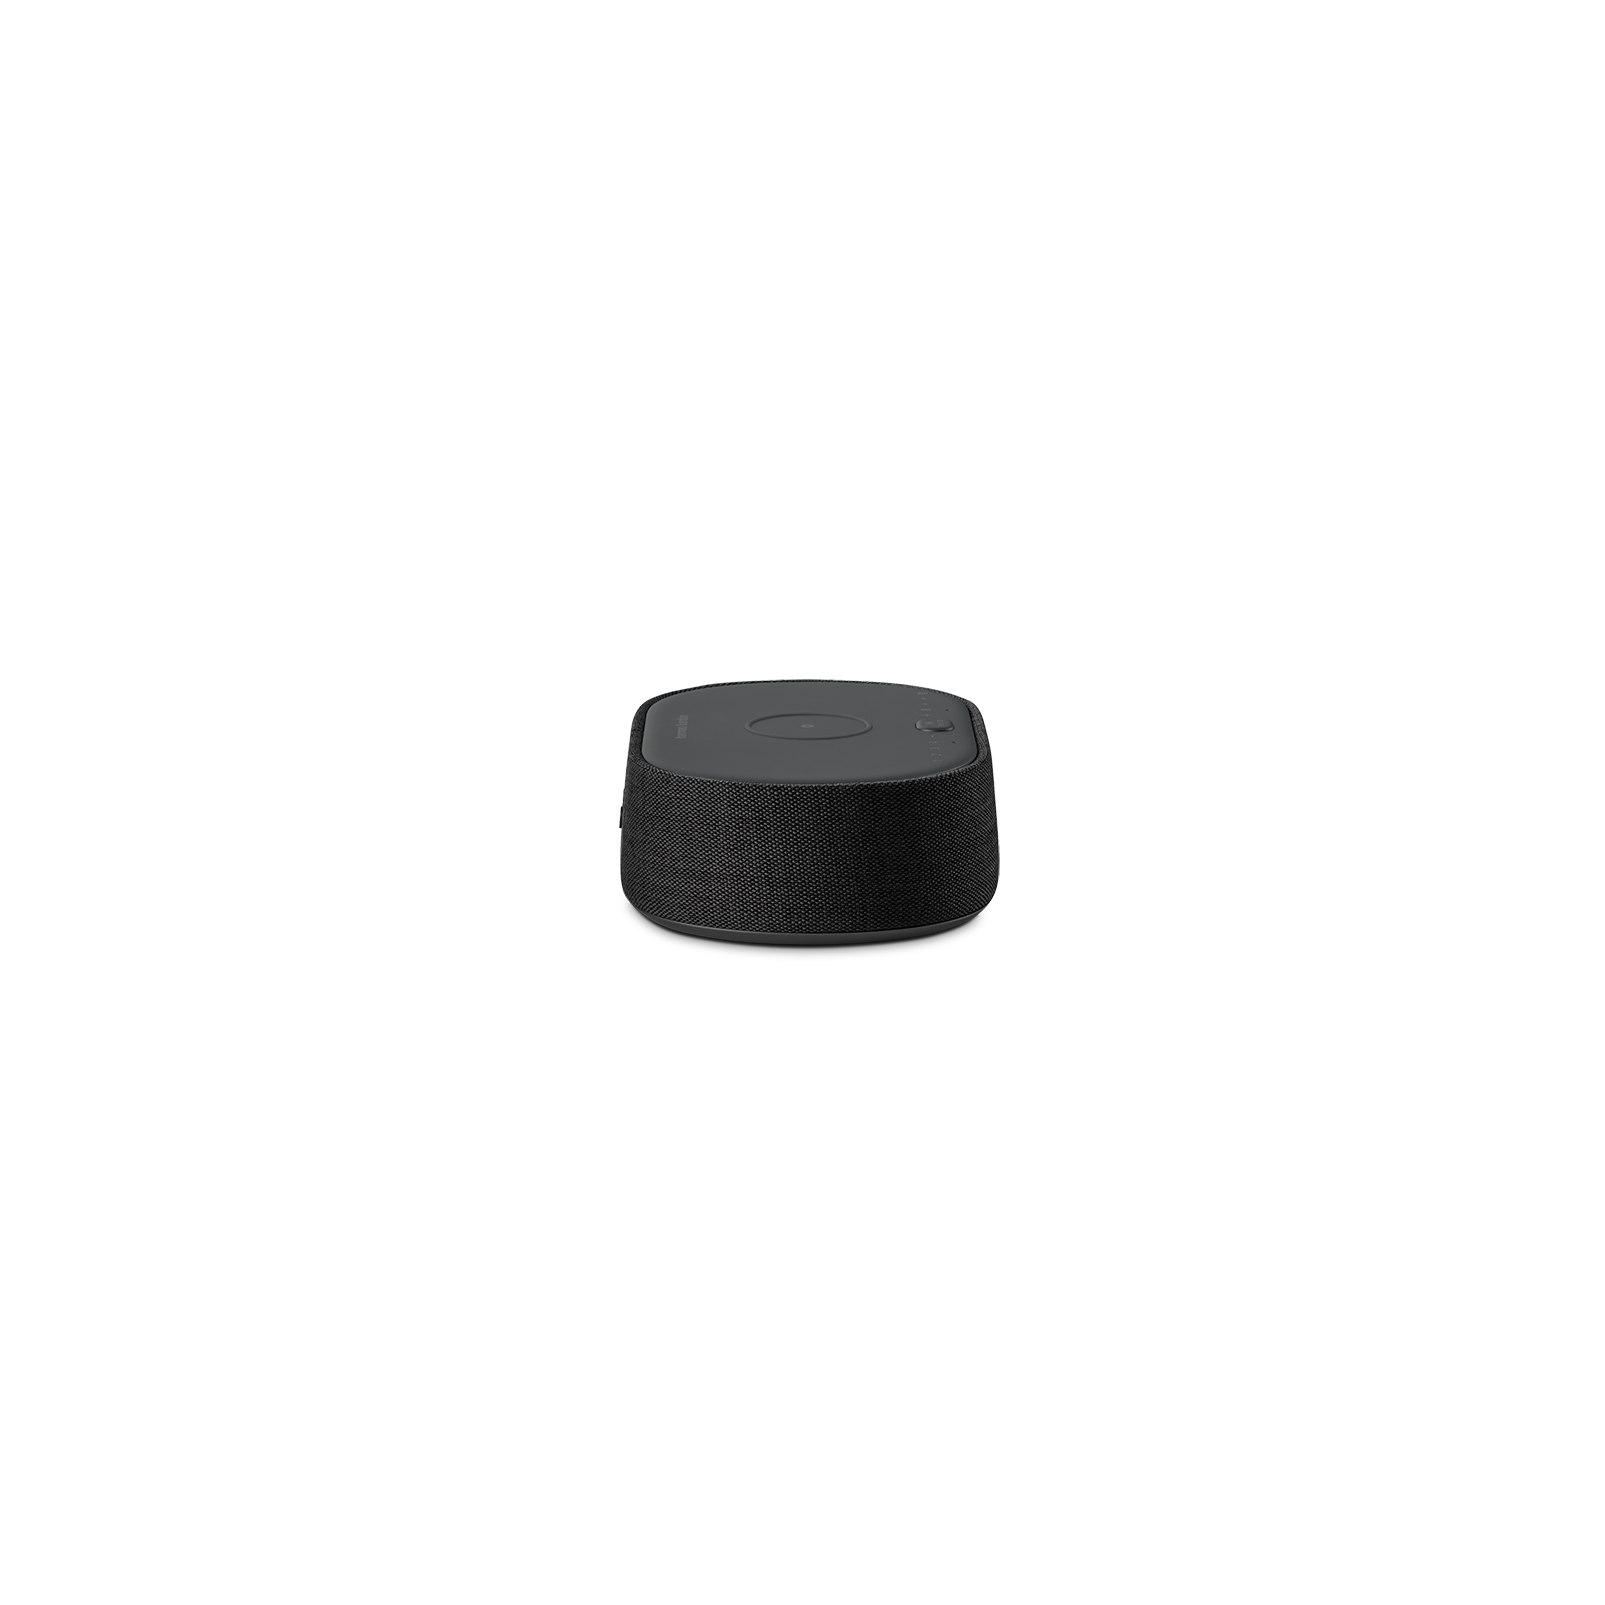 Harman Kardon Citation Oasis DAB - Black - Voice-controlled speaker with DAB/DAB+ radio and wireless phone charging - Left